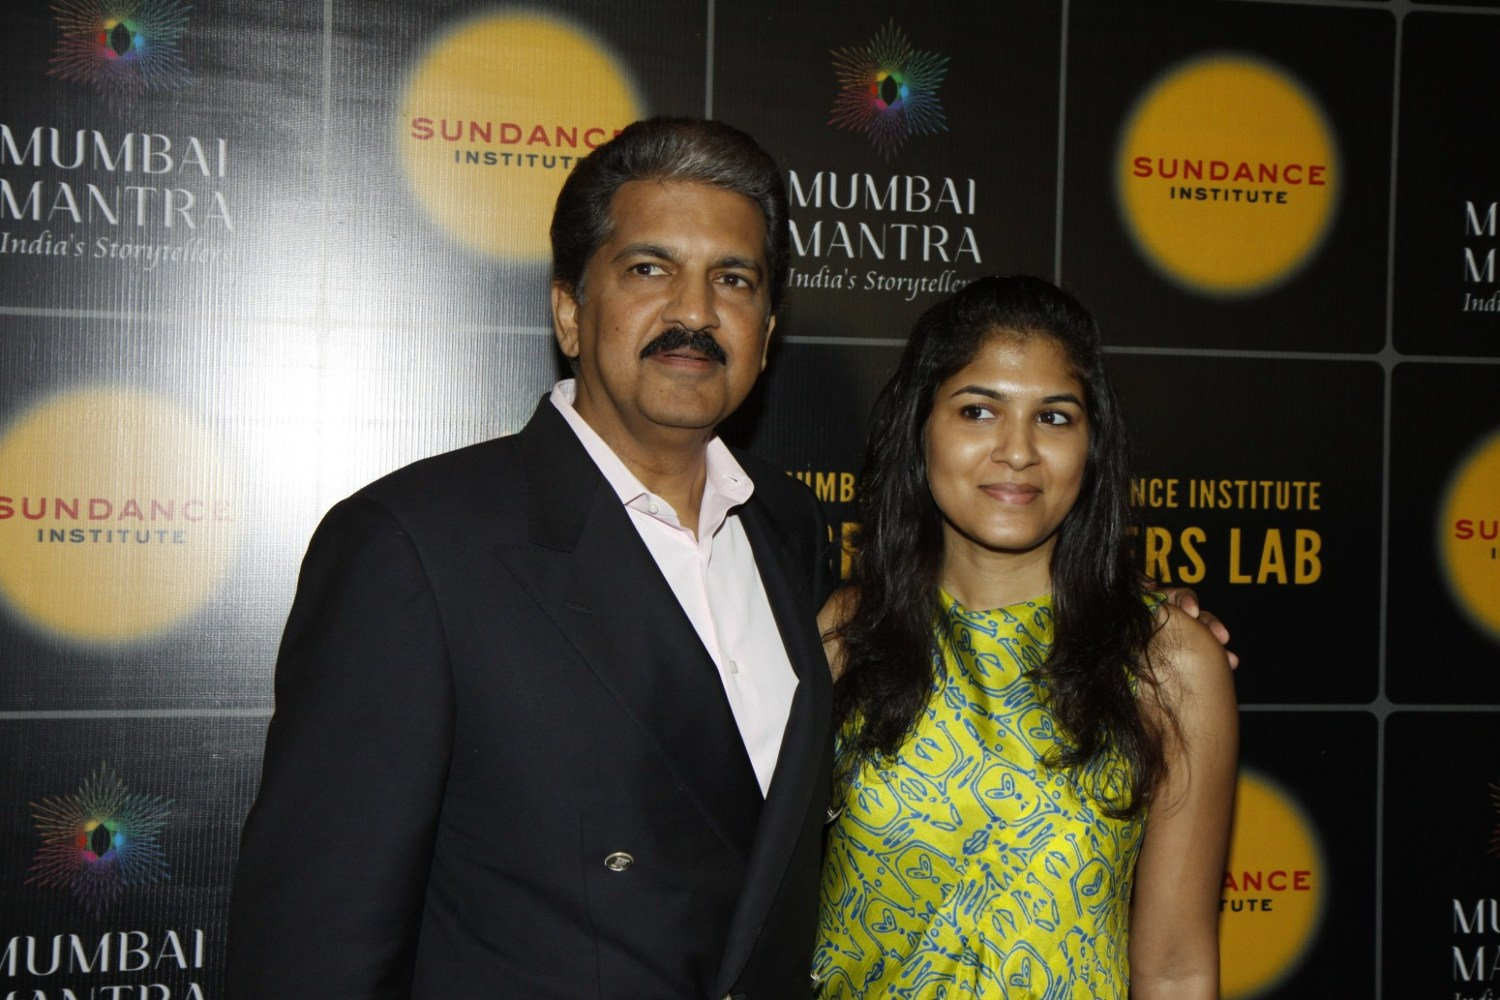 anand mahindra 2 Mr anand mahindra reading success stories of greatest professionals stimulates motivational enzyme within us and we all wish to emulate them on path of success.